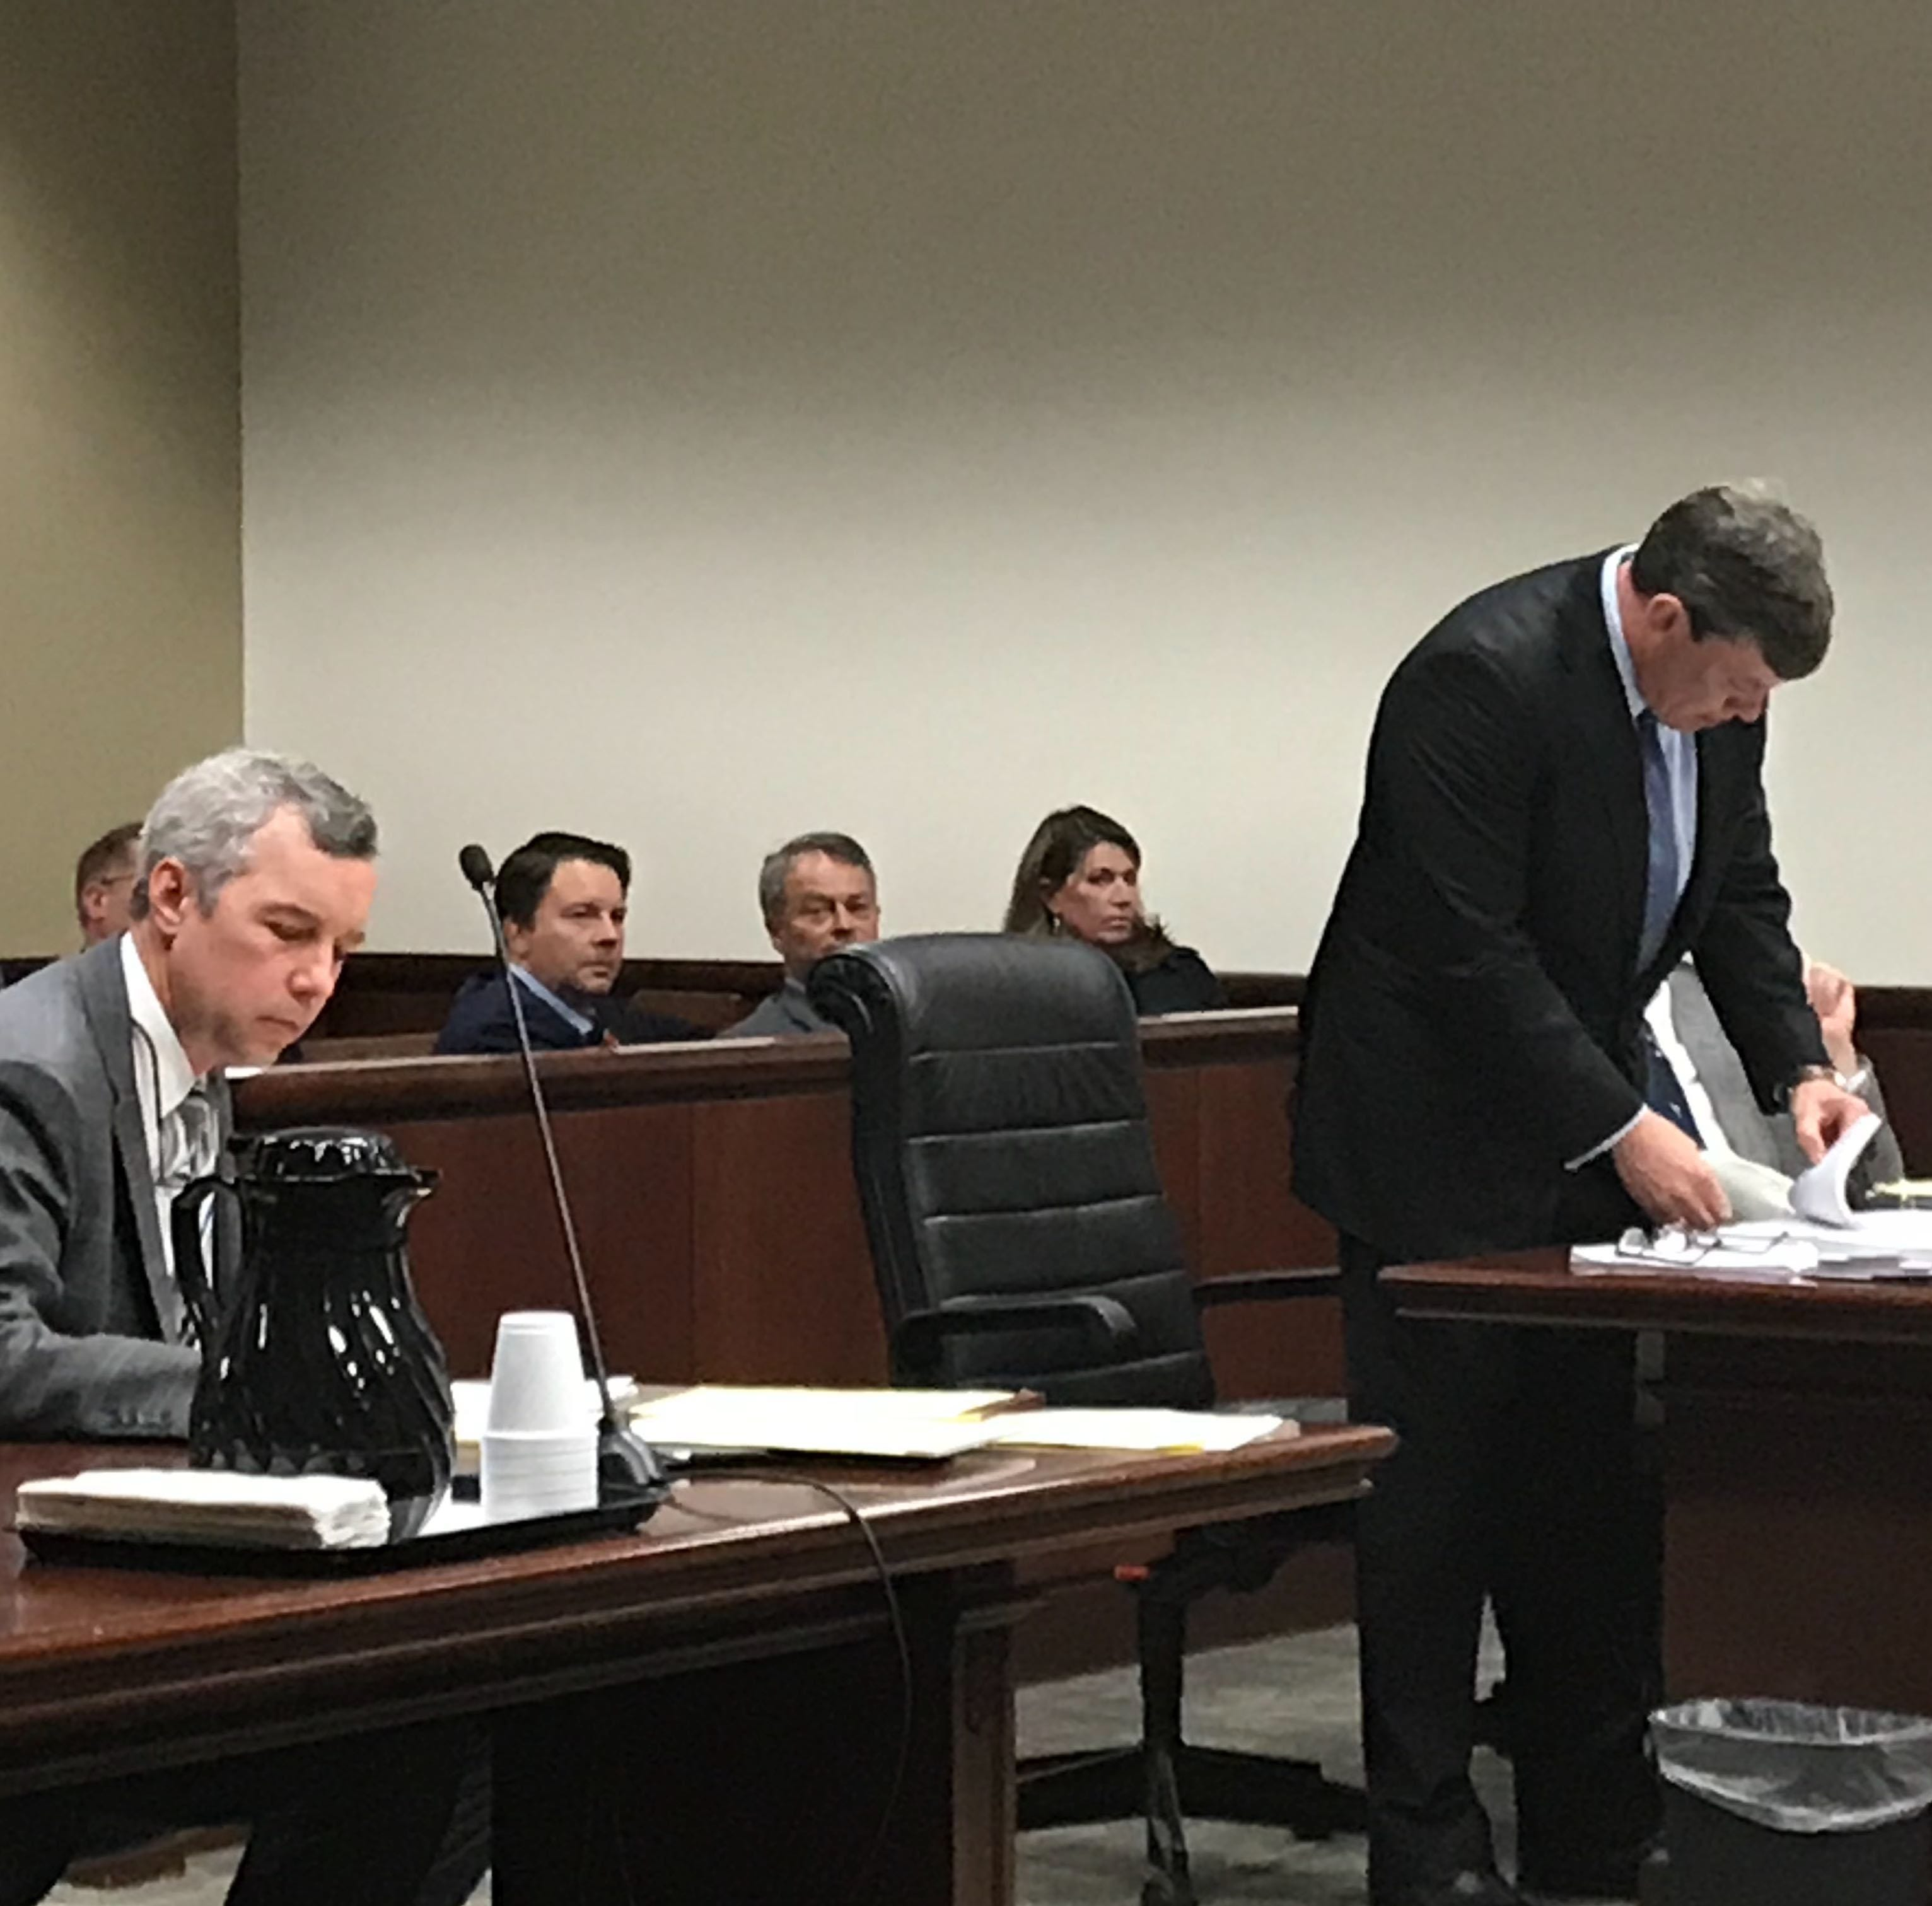 Lawyer wants to know if Greenville real estate developer researched date rape drugs